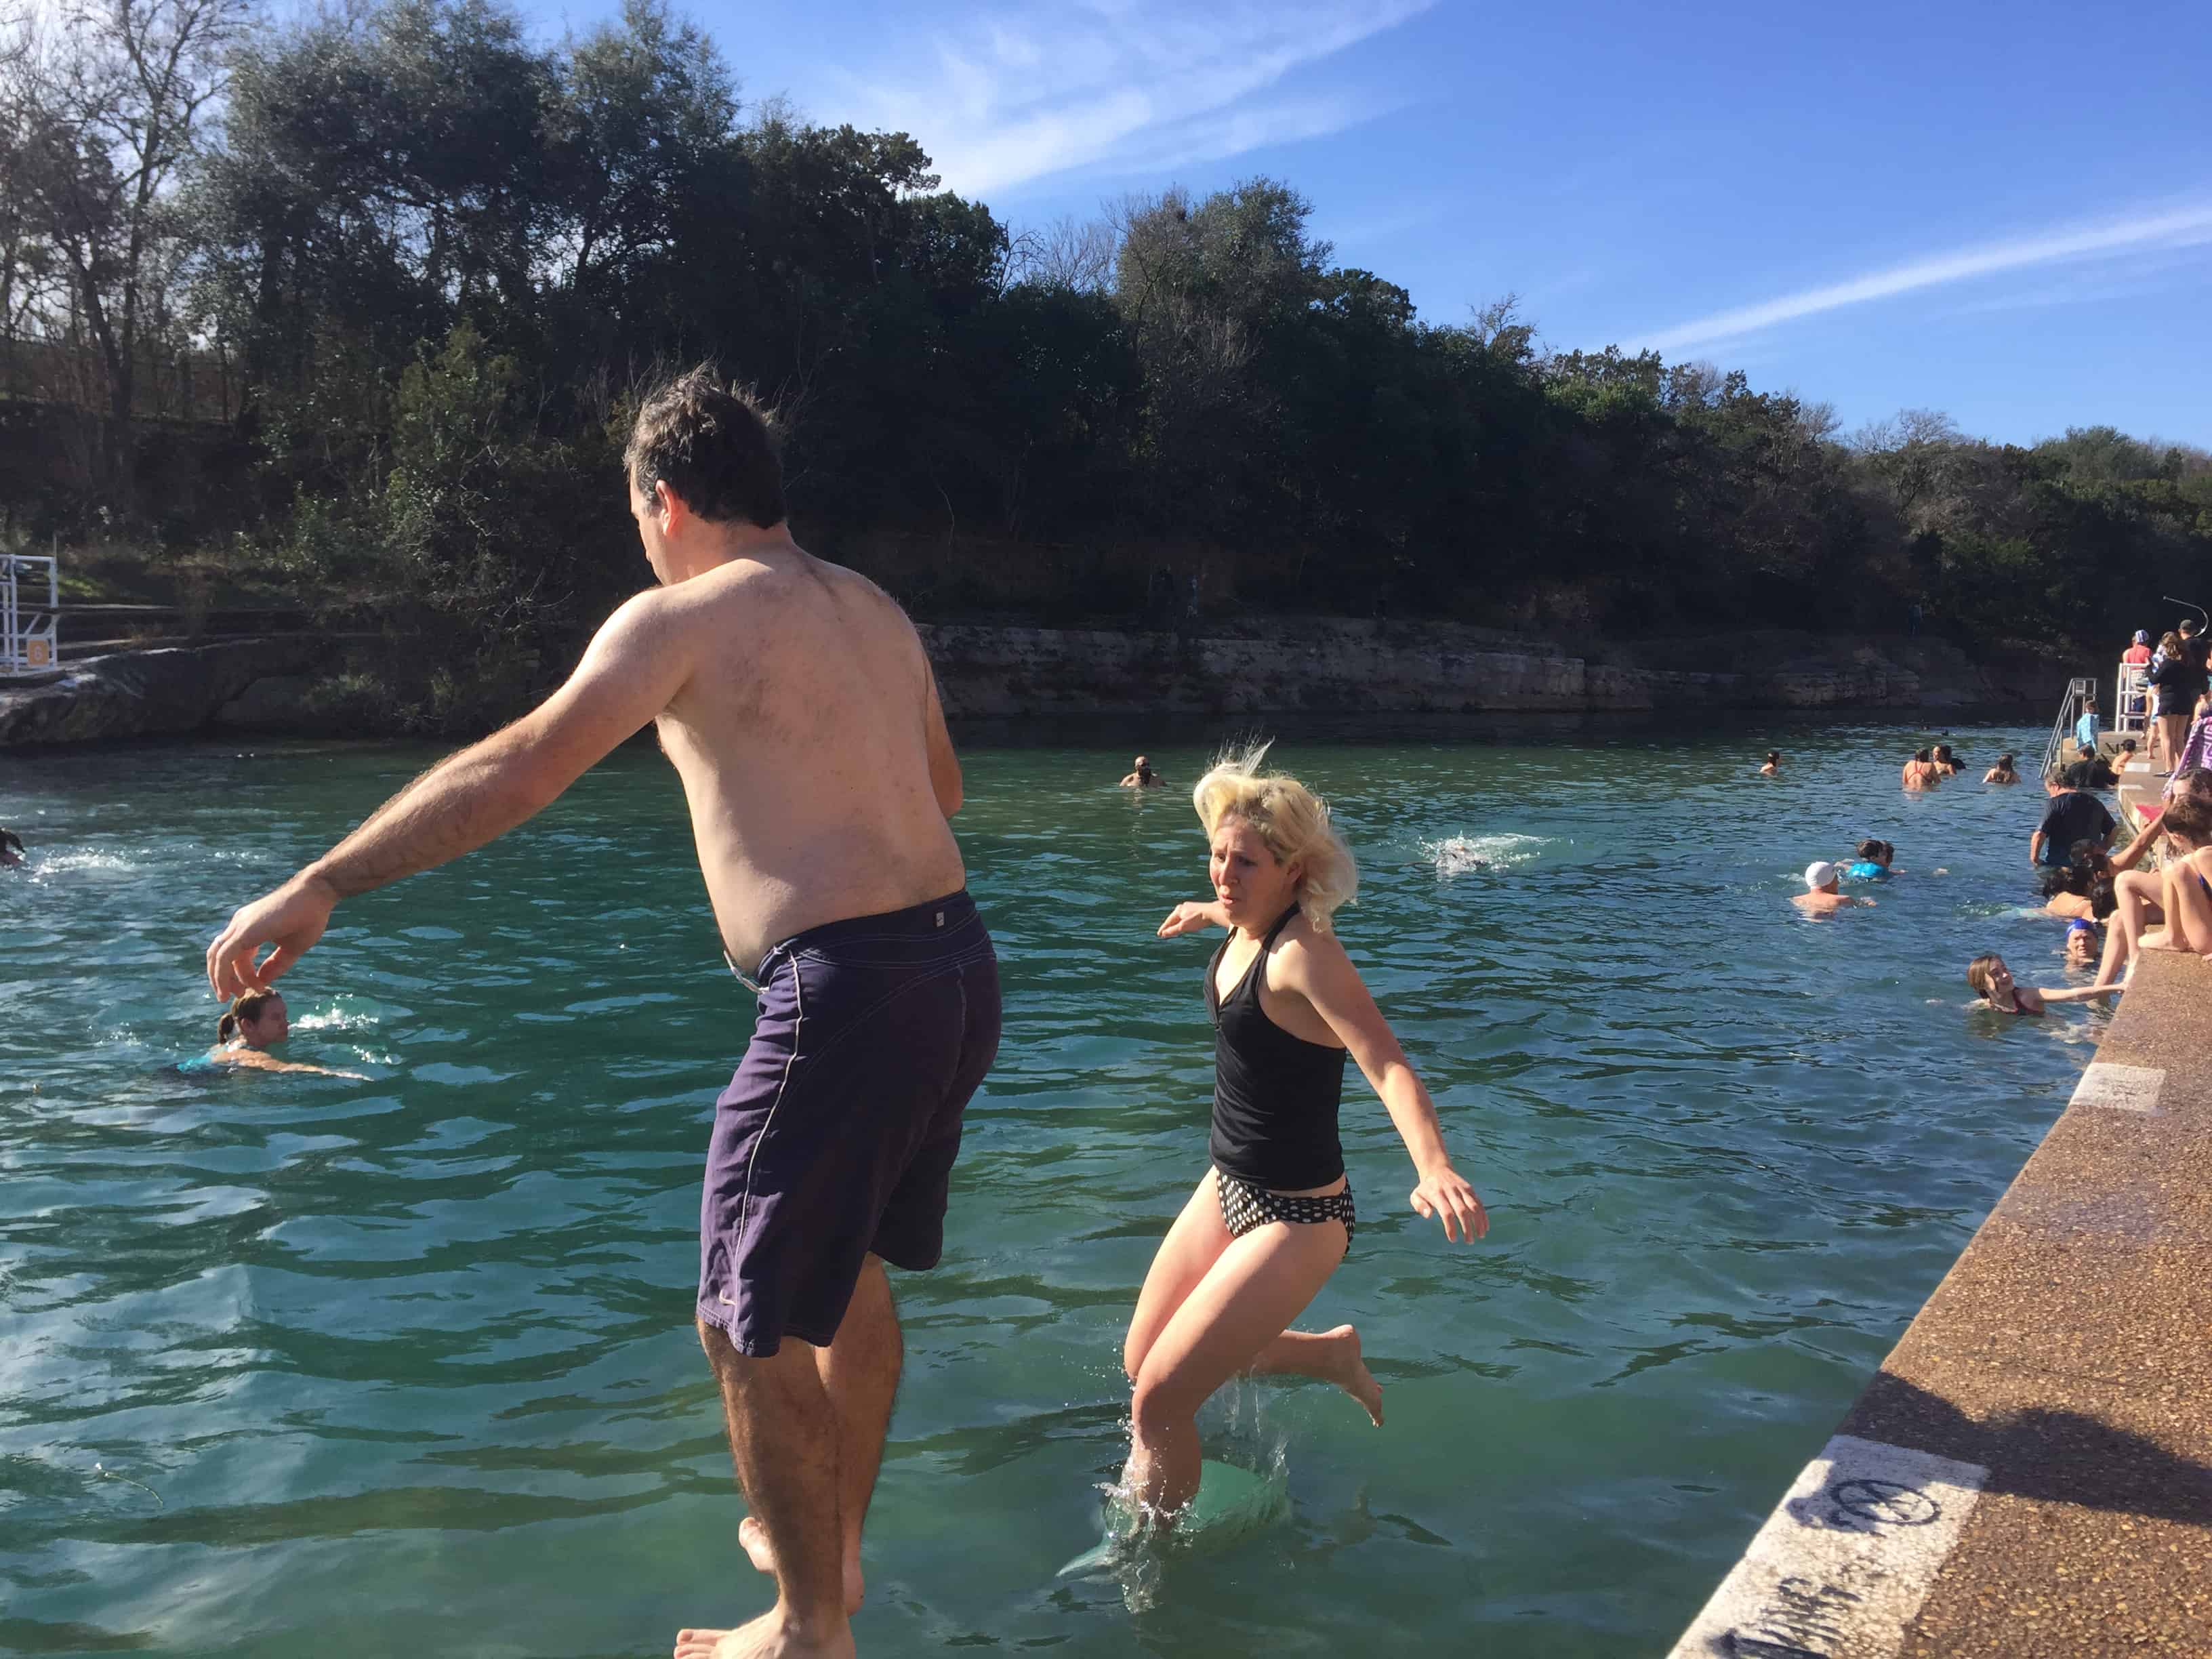 polar bear splash barton springs austin texas 2017 rachel funny face